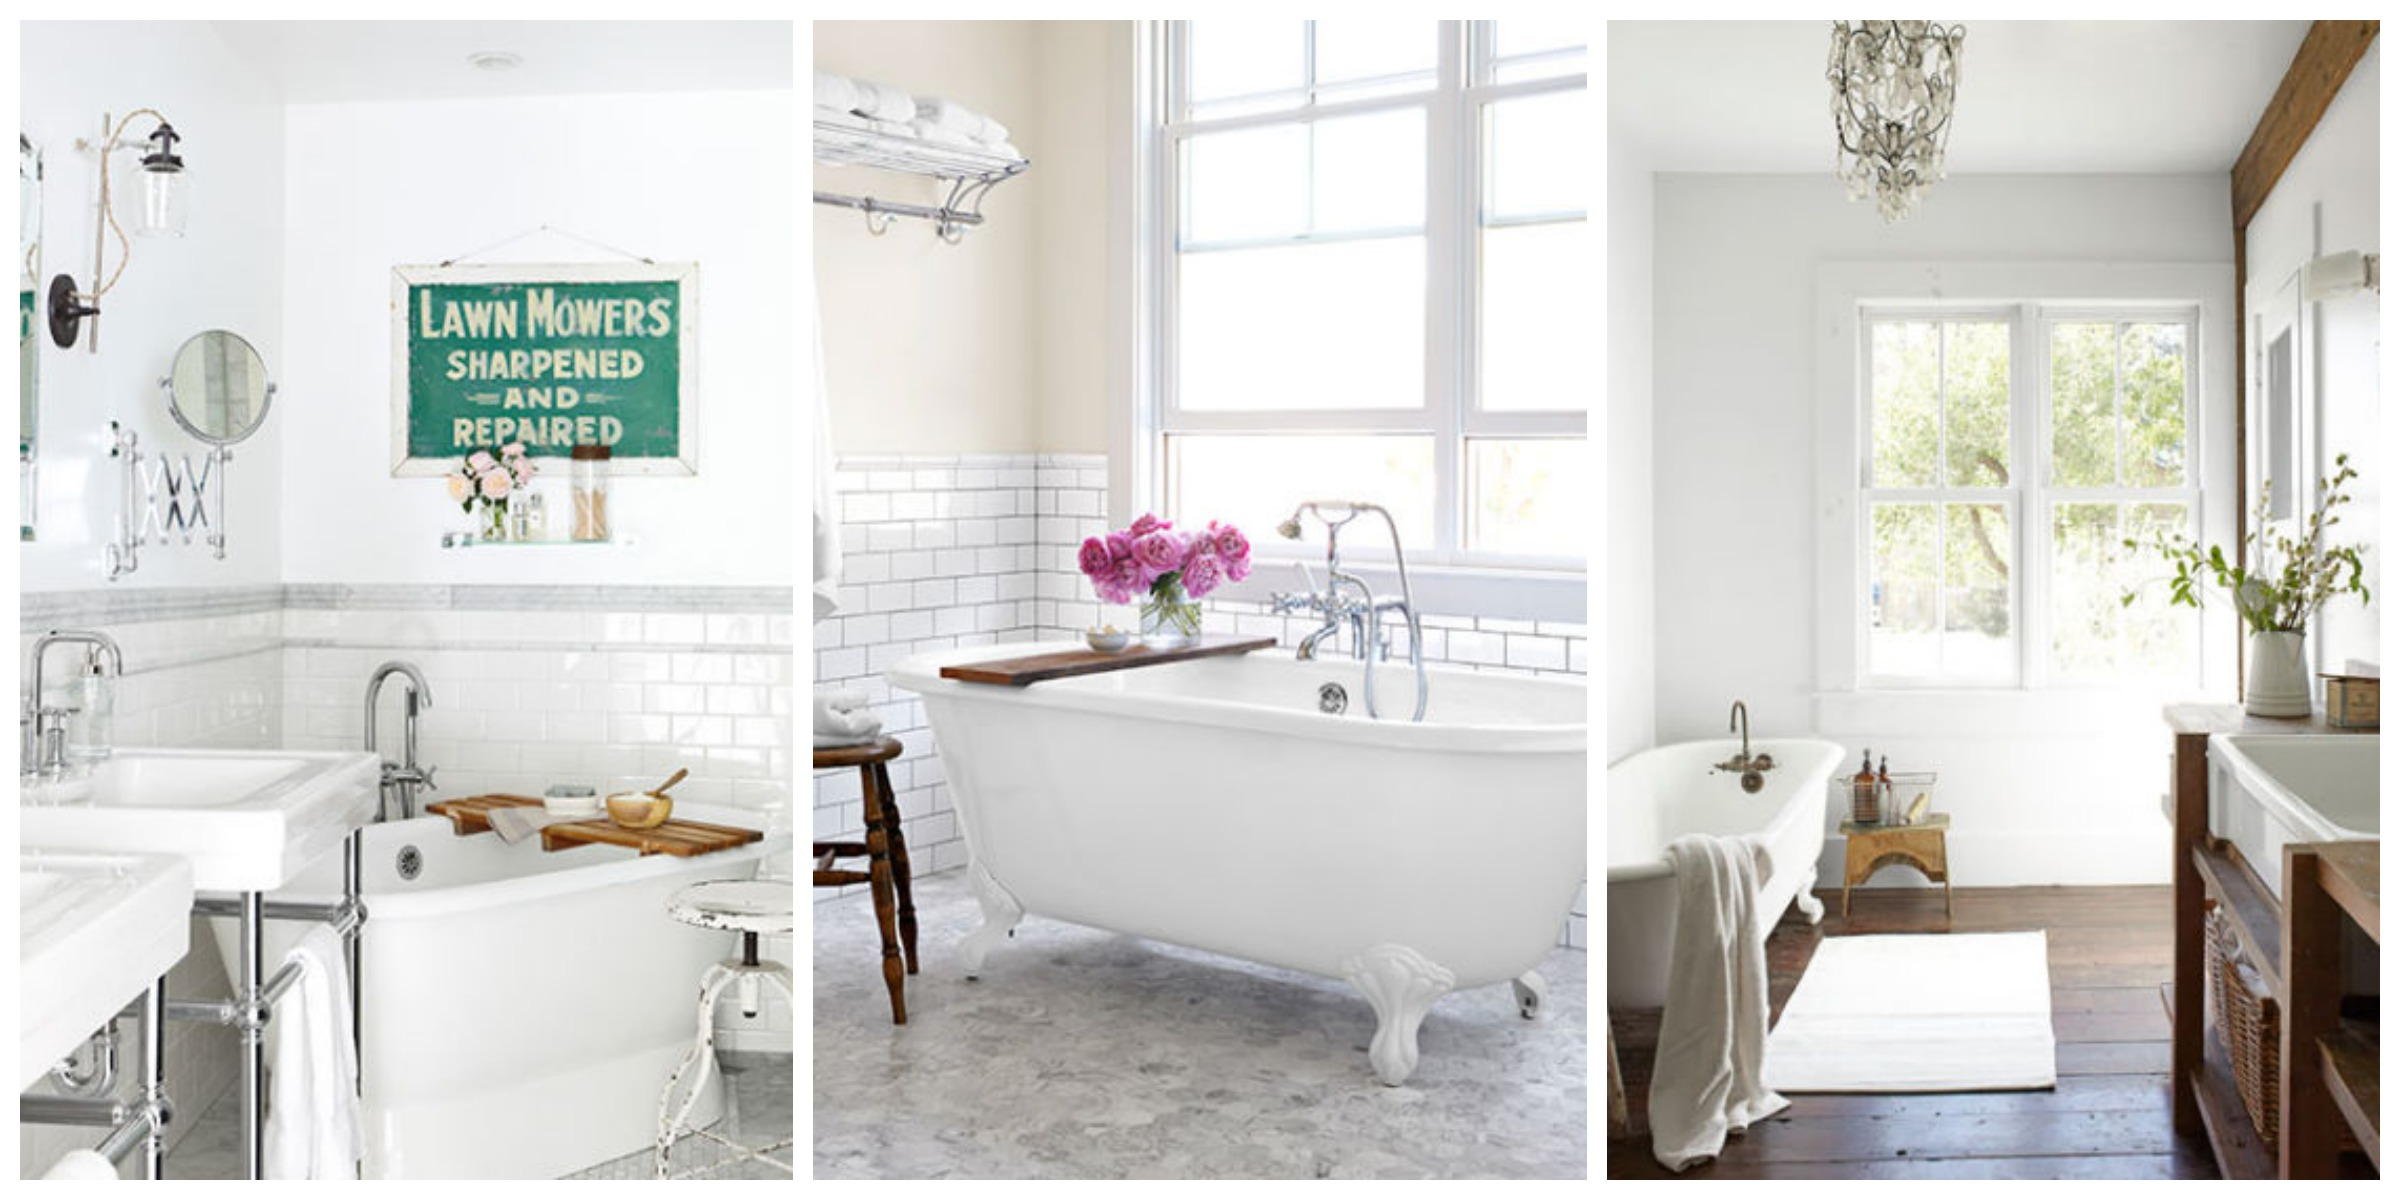 30 White Bathroom Ideas - Decorating with White for Bathrooms on White Bathroom Design Ideas  id=56357